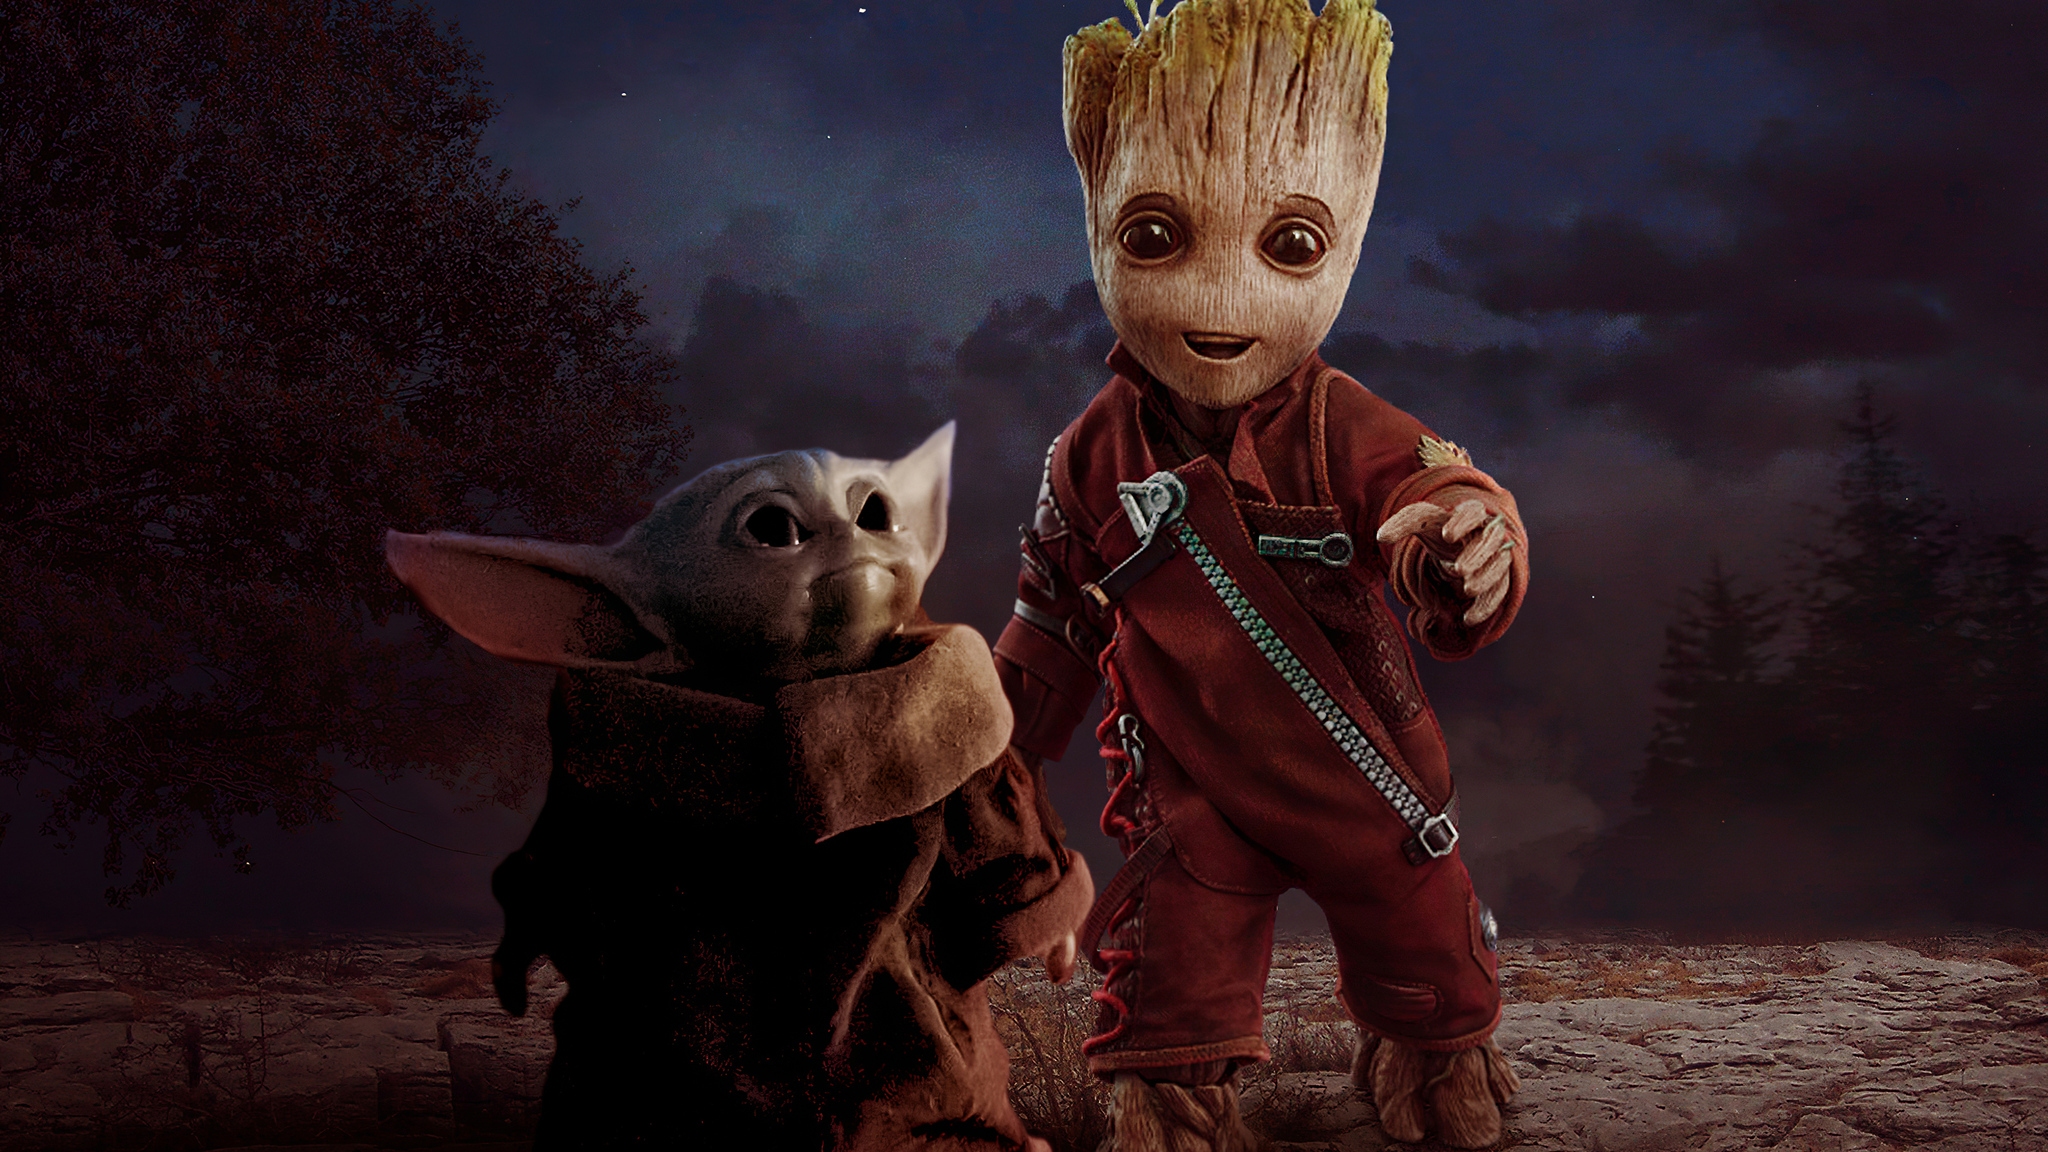 2048x1152 Baby Yoda And Baby Groot 2048x1152 Resolution Hd